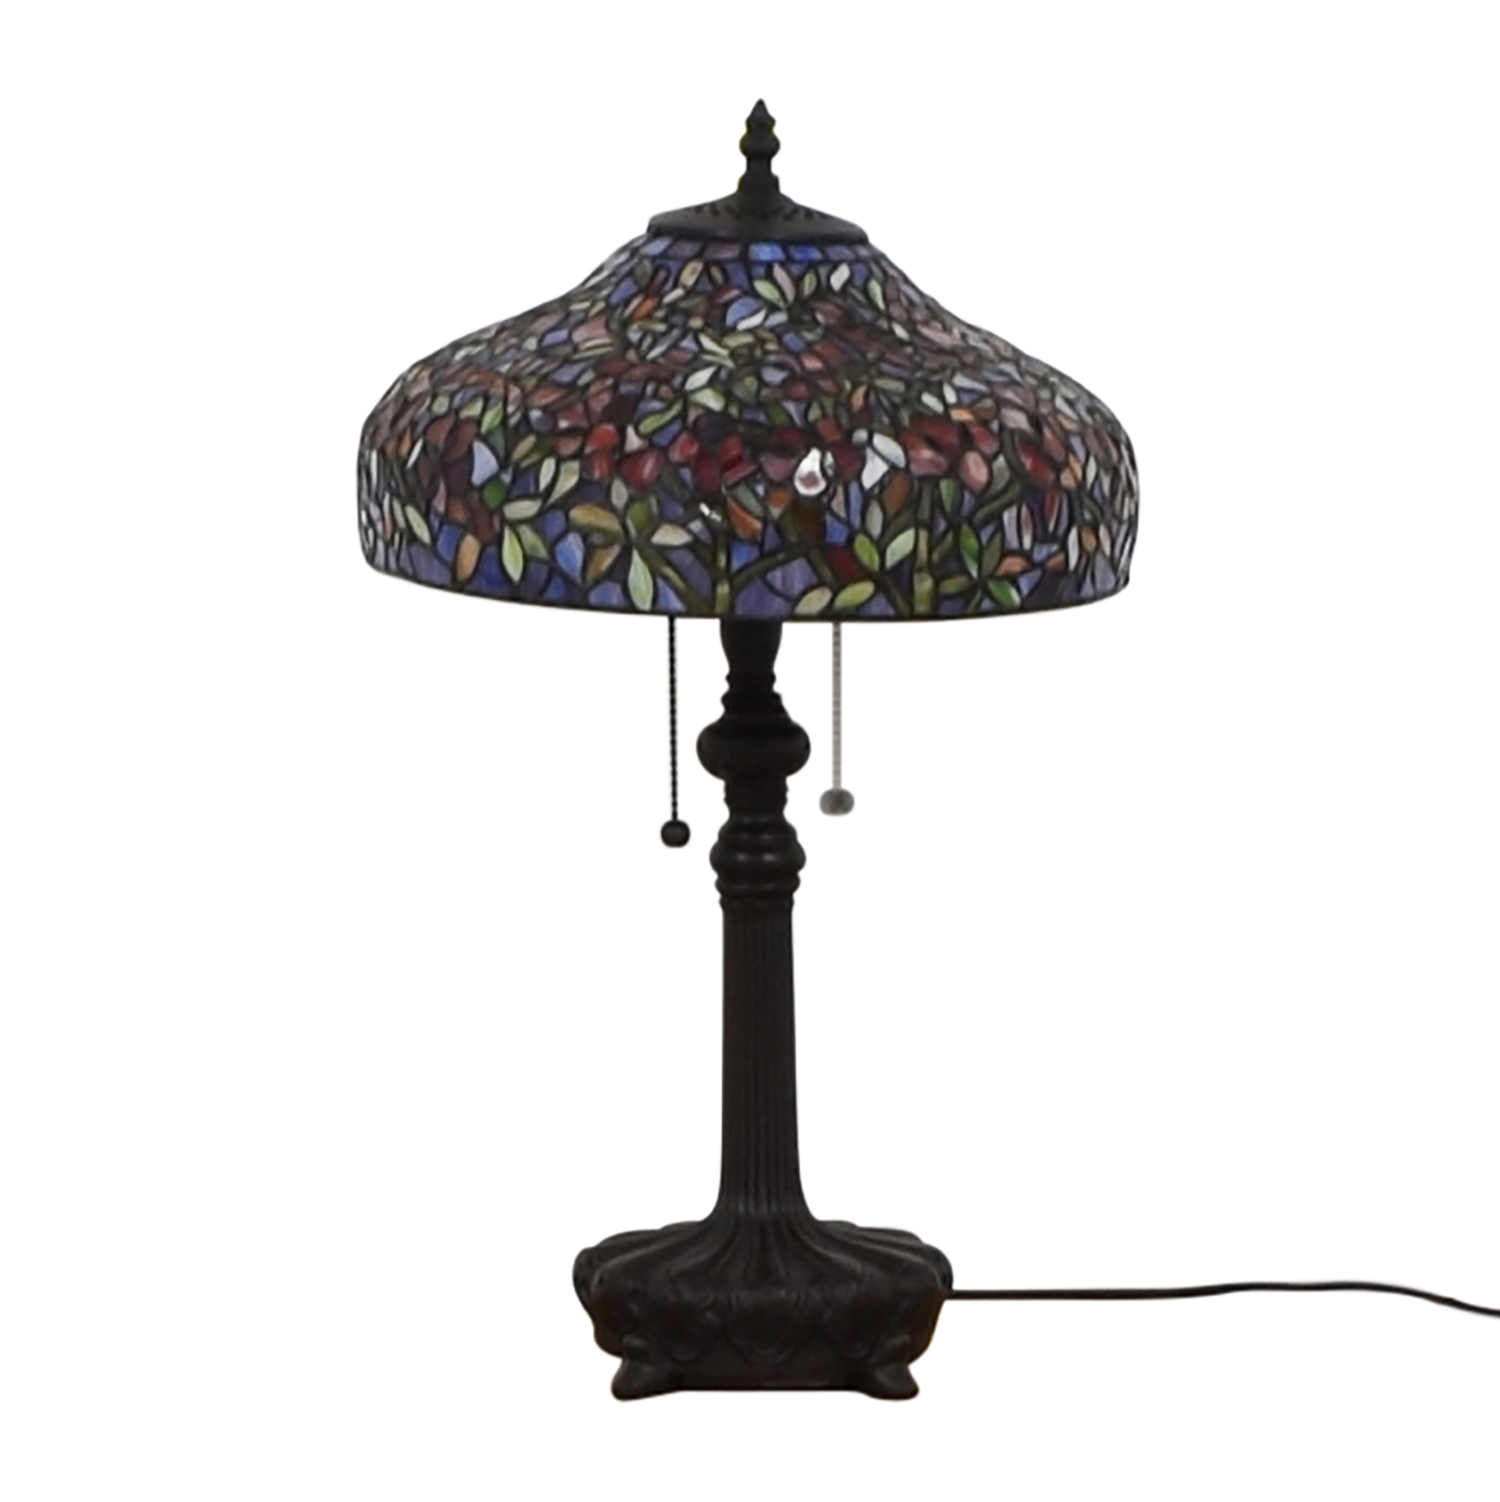 Quoizel Ouoizel Tiffany-Style Table Lamp nyc